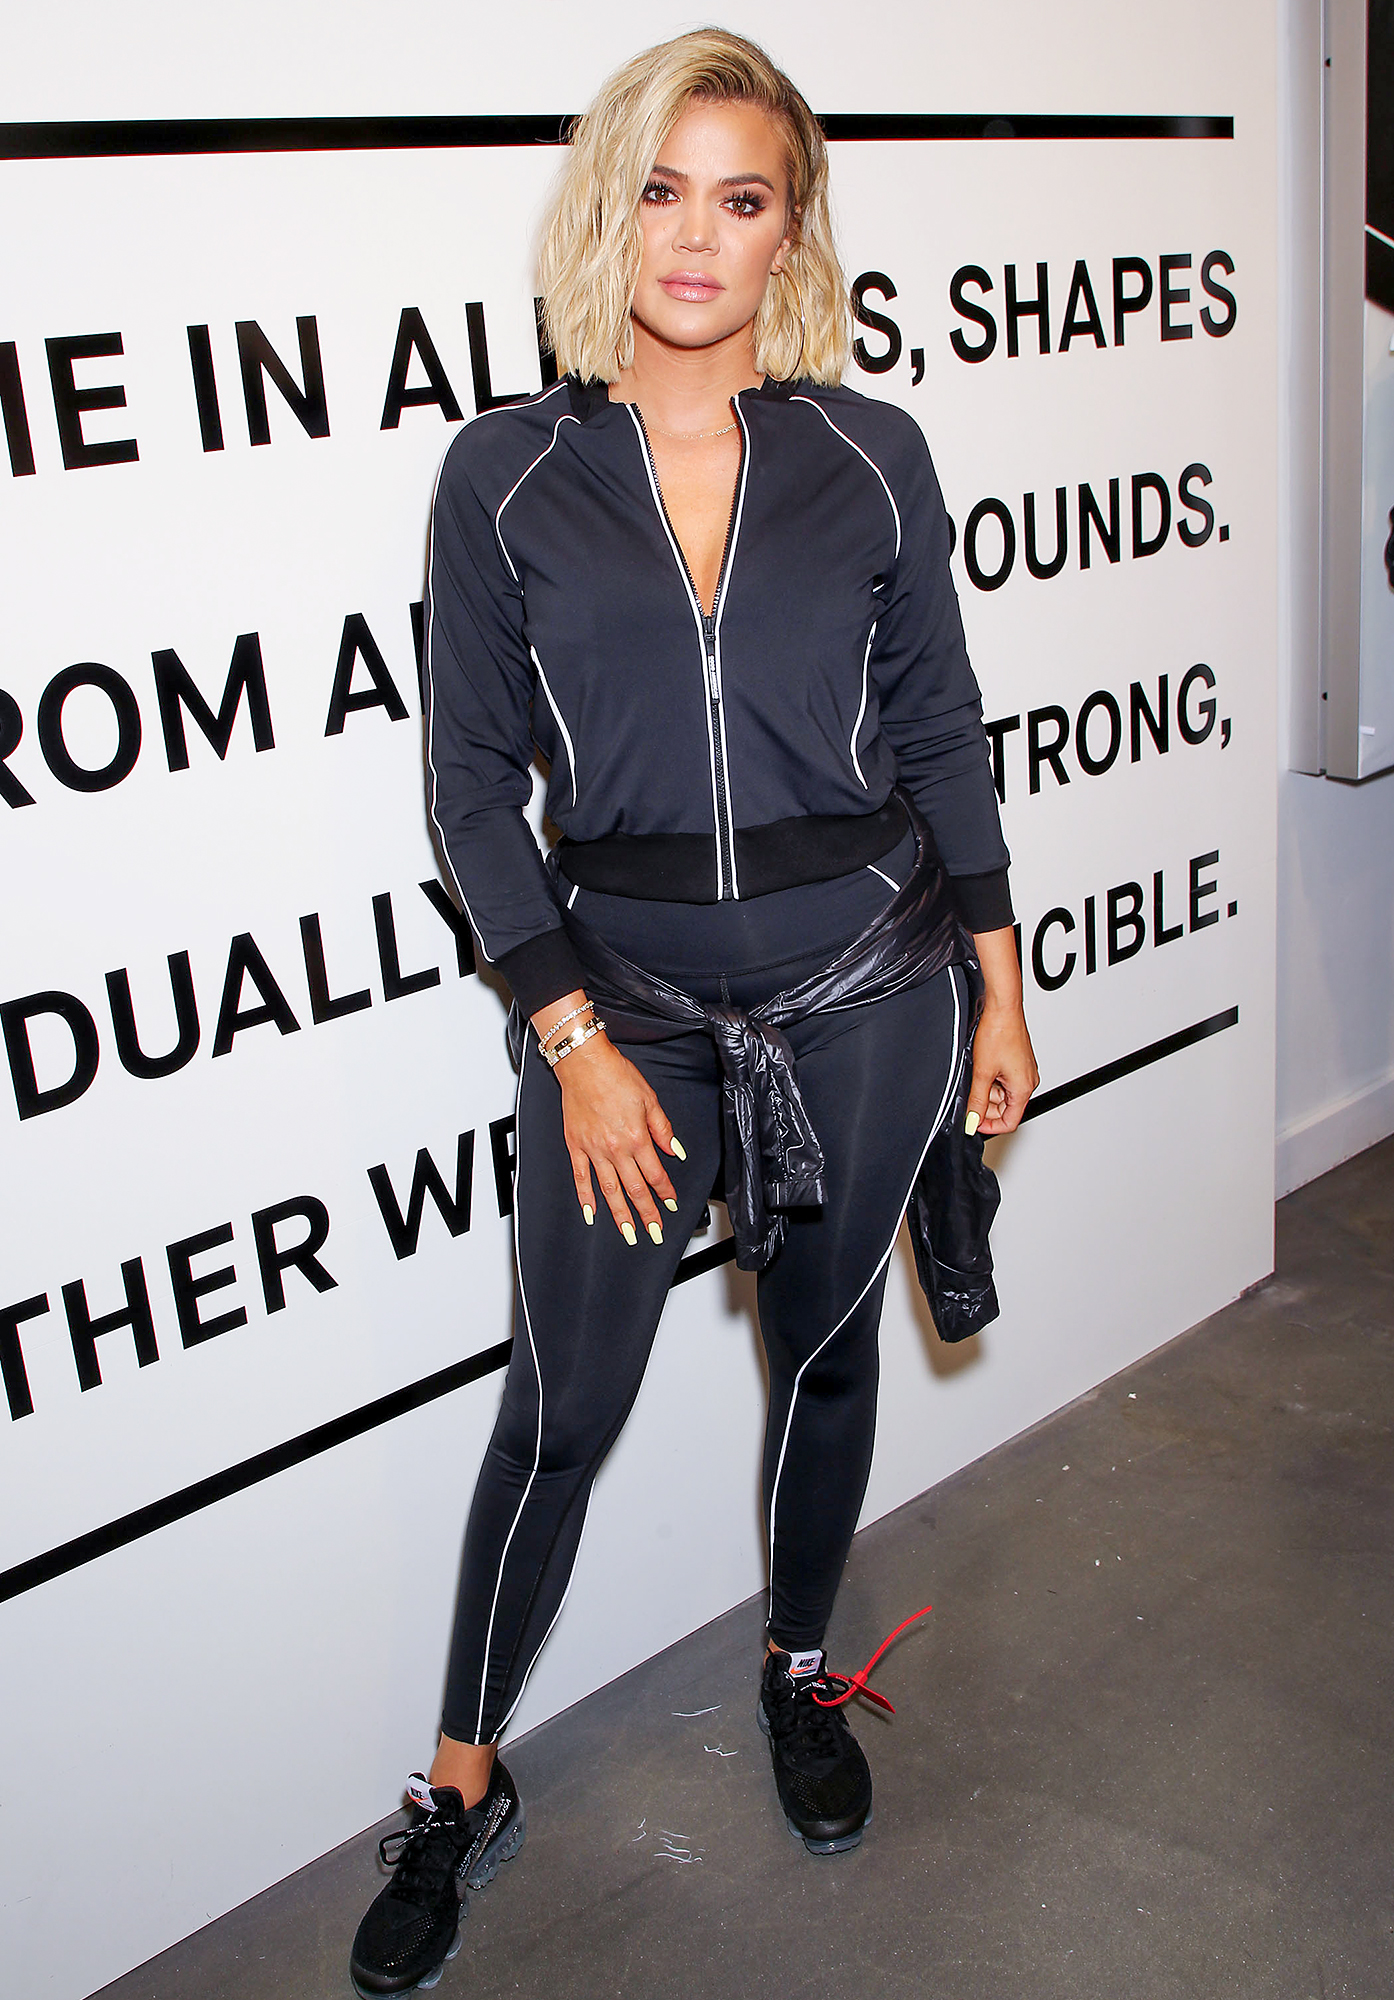 Exclusive - Good American and SIX:02 Launch Performance Line with Co-Founders Emma Grede and Khloe Kardashian in New York City, USA - 02 Aug 2018